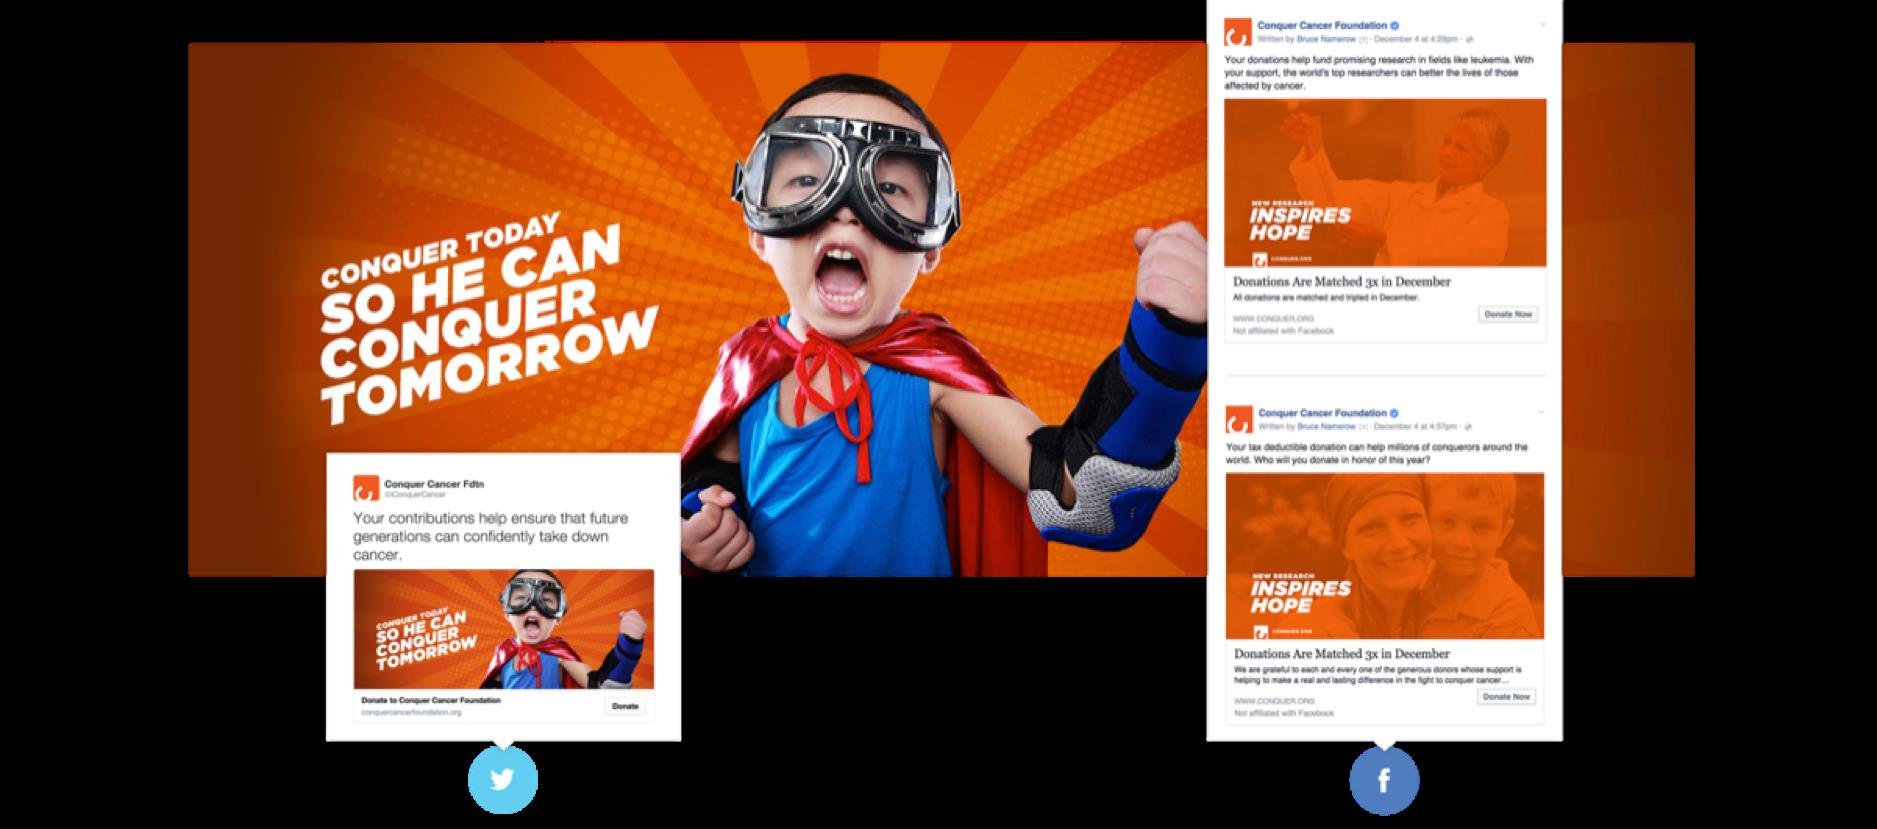 ASCO / Conquer Cancer Foundation Social Strategy, Creative and Paid Media Execution